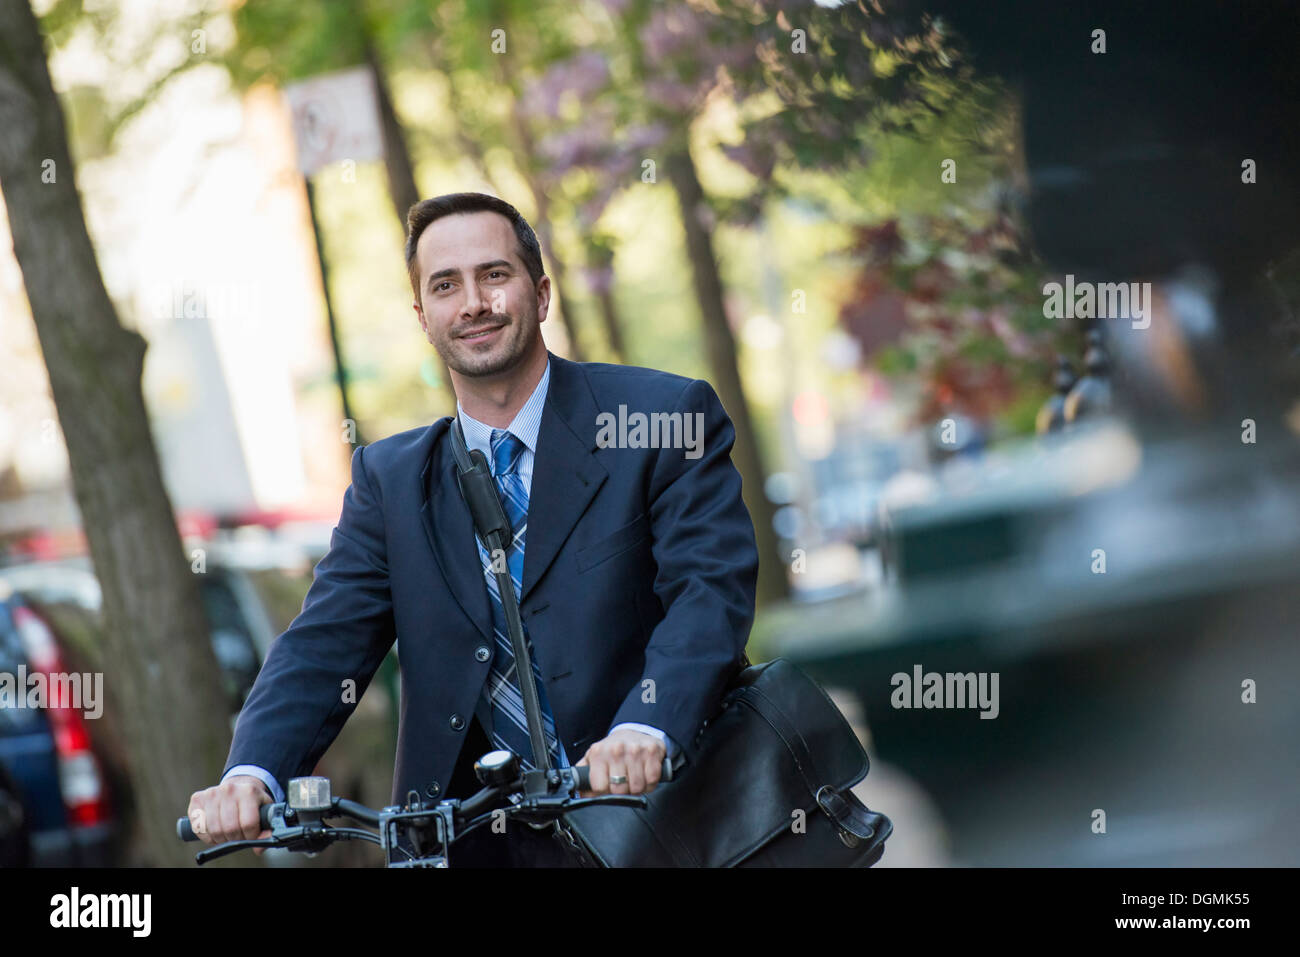 A man in a business suit, outdoors in a park. Sitting on a bicycle. Stock Photo